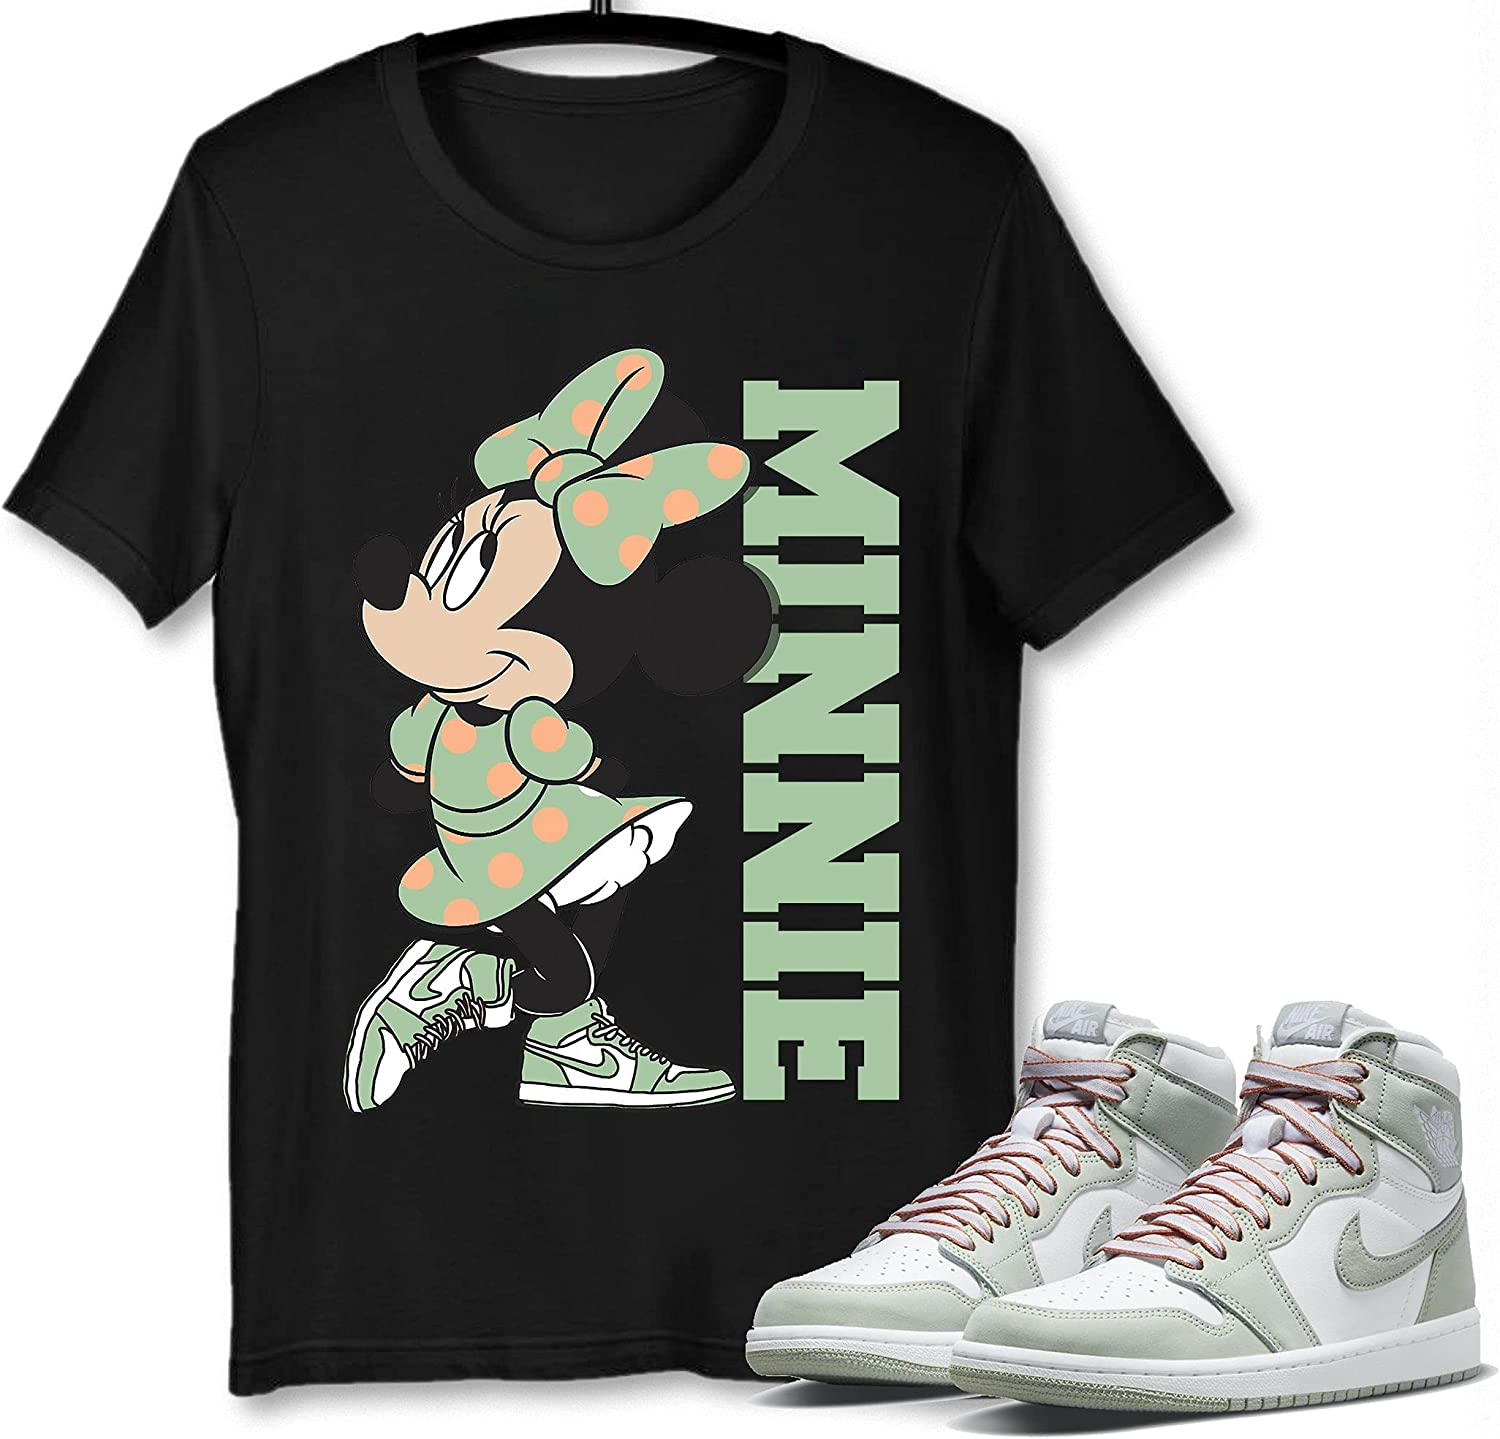 #Minnie #Mouse T-Shirt to Beauty products Match Jacksonville Mall Jordan G 1 Sneaker Seafoam Snkrs